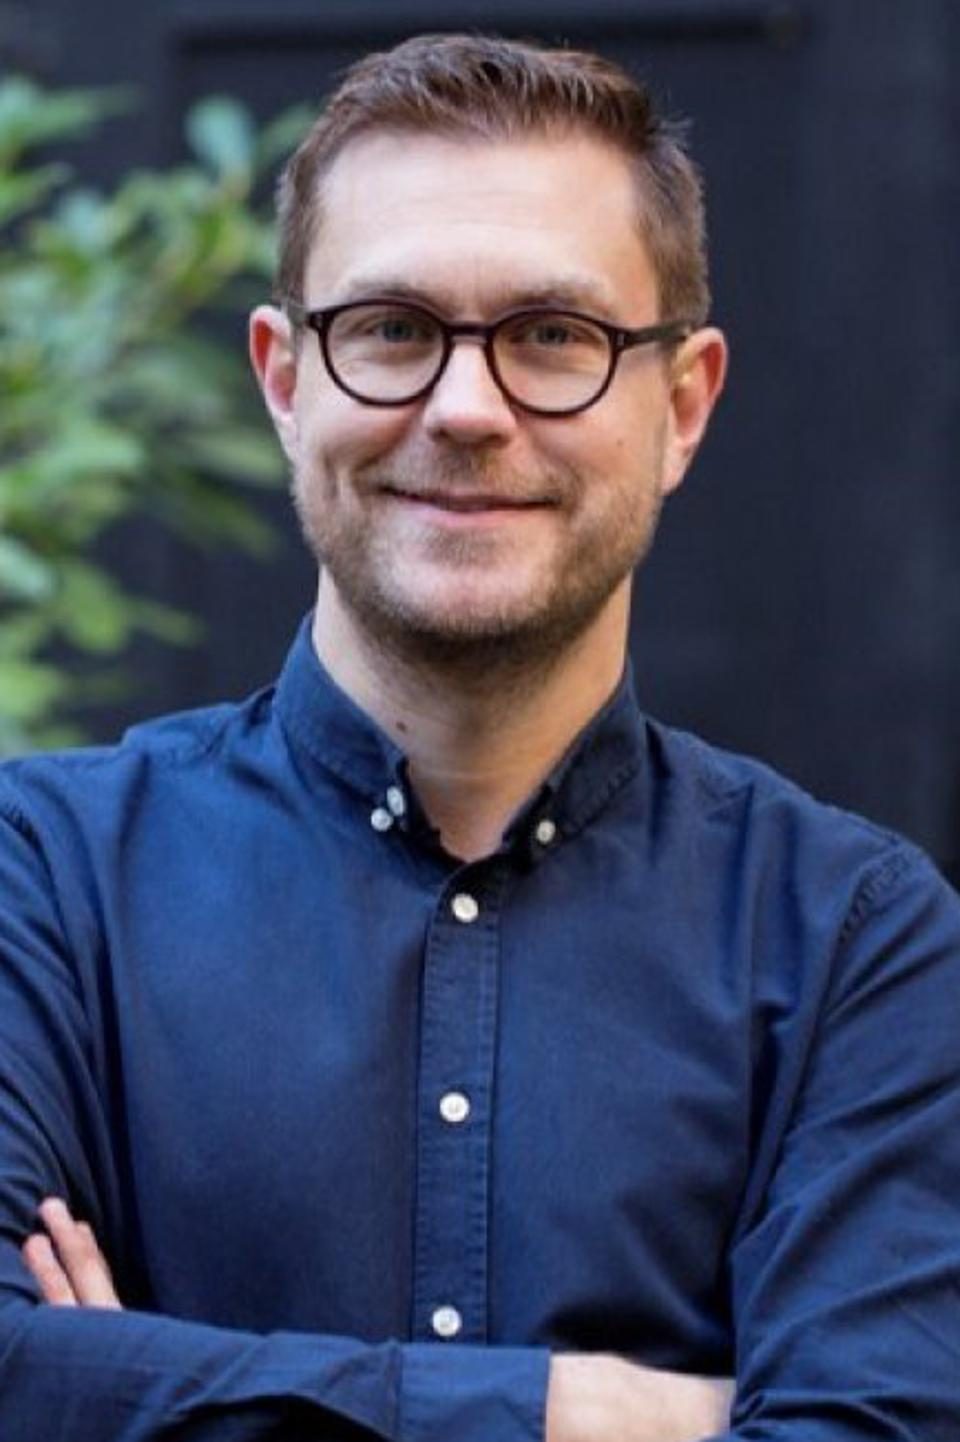 Christian Møller-Holst, CEO and founder of Goodwings